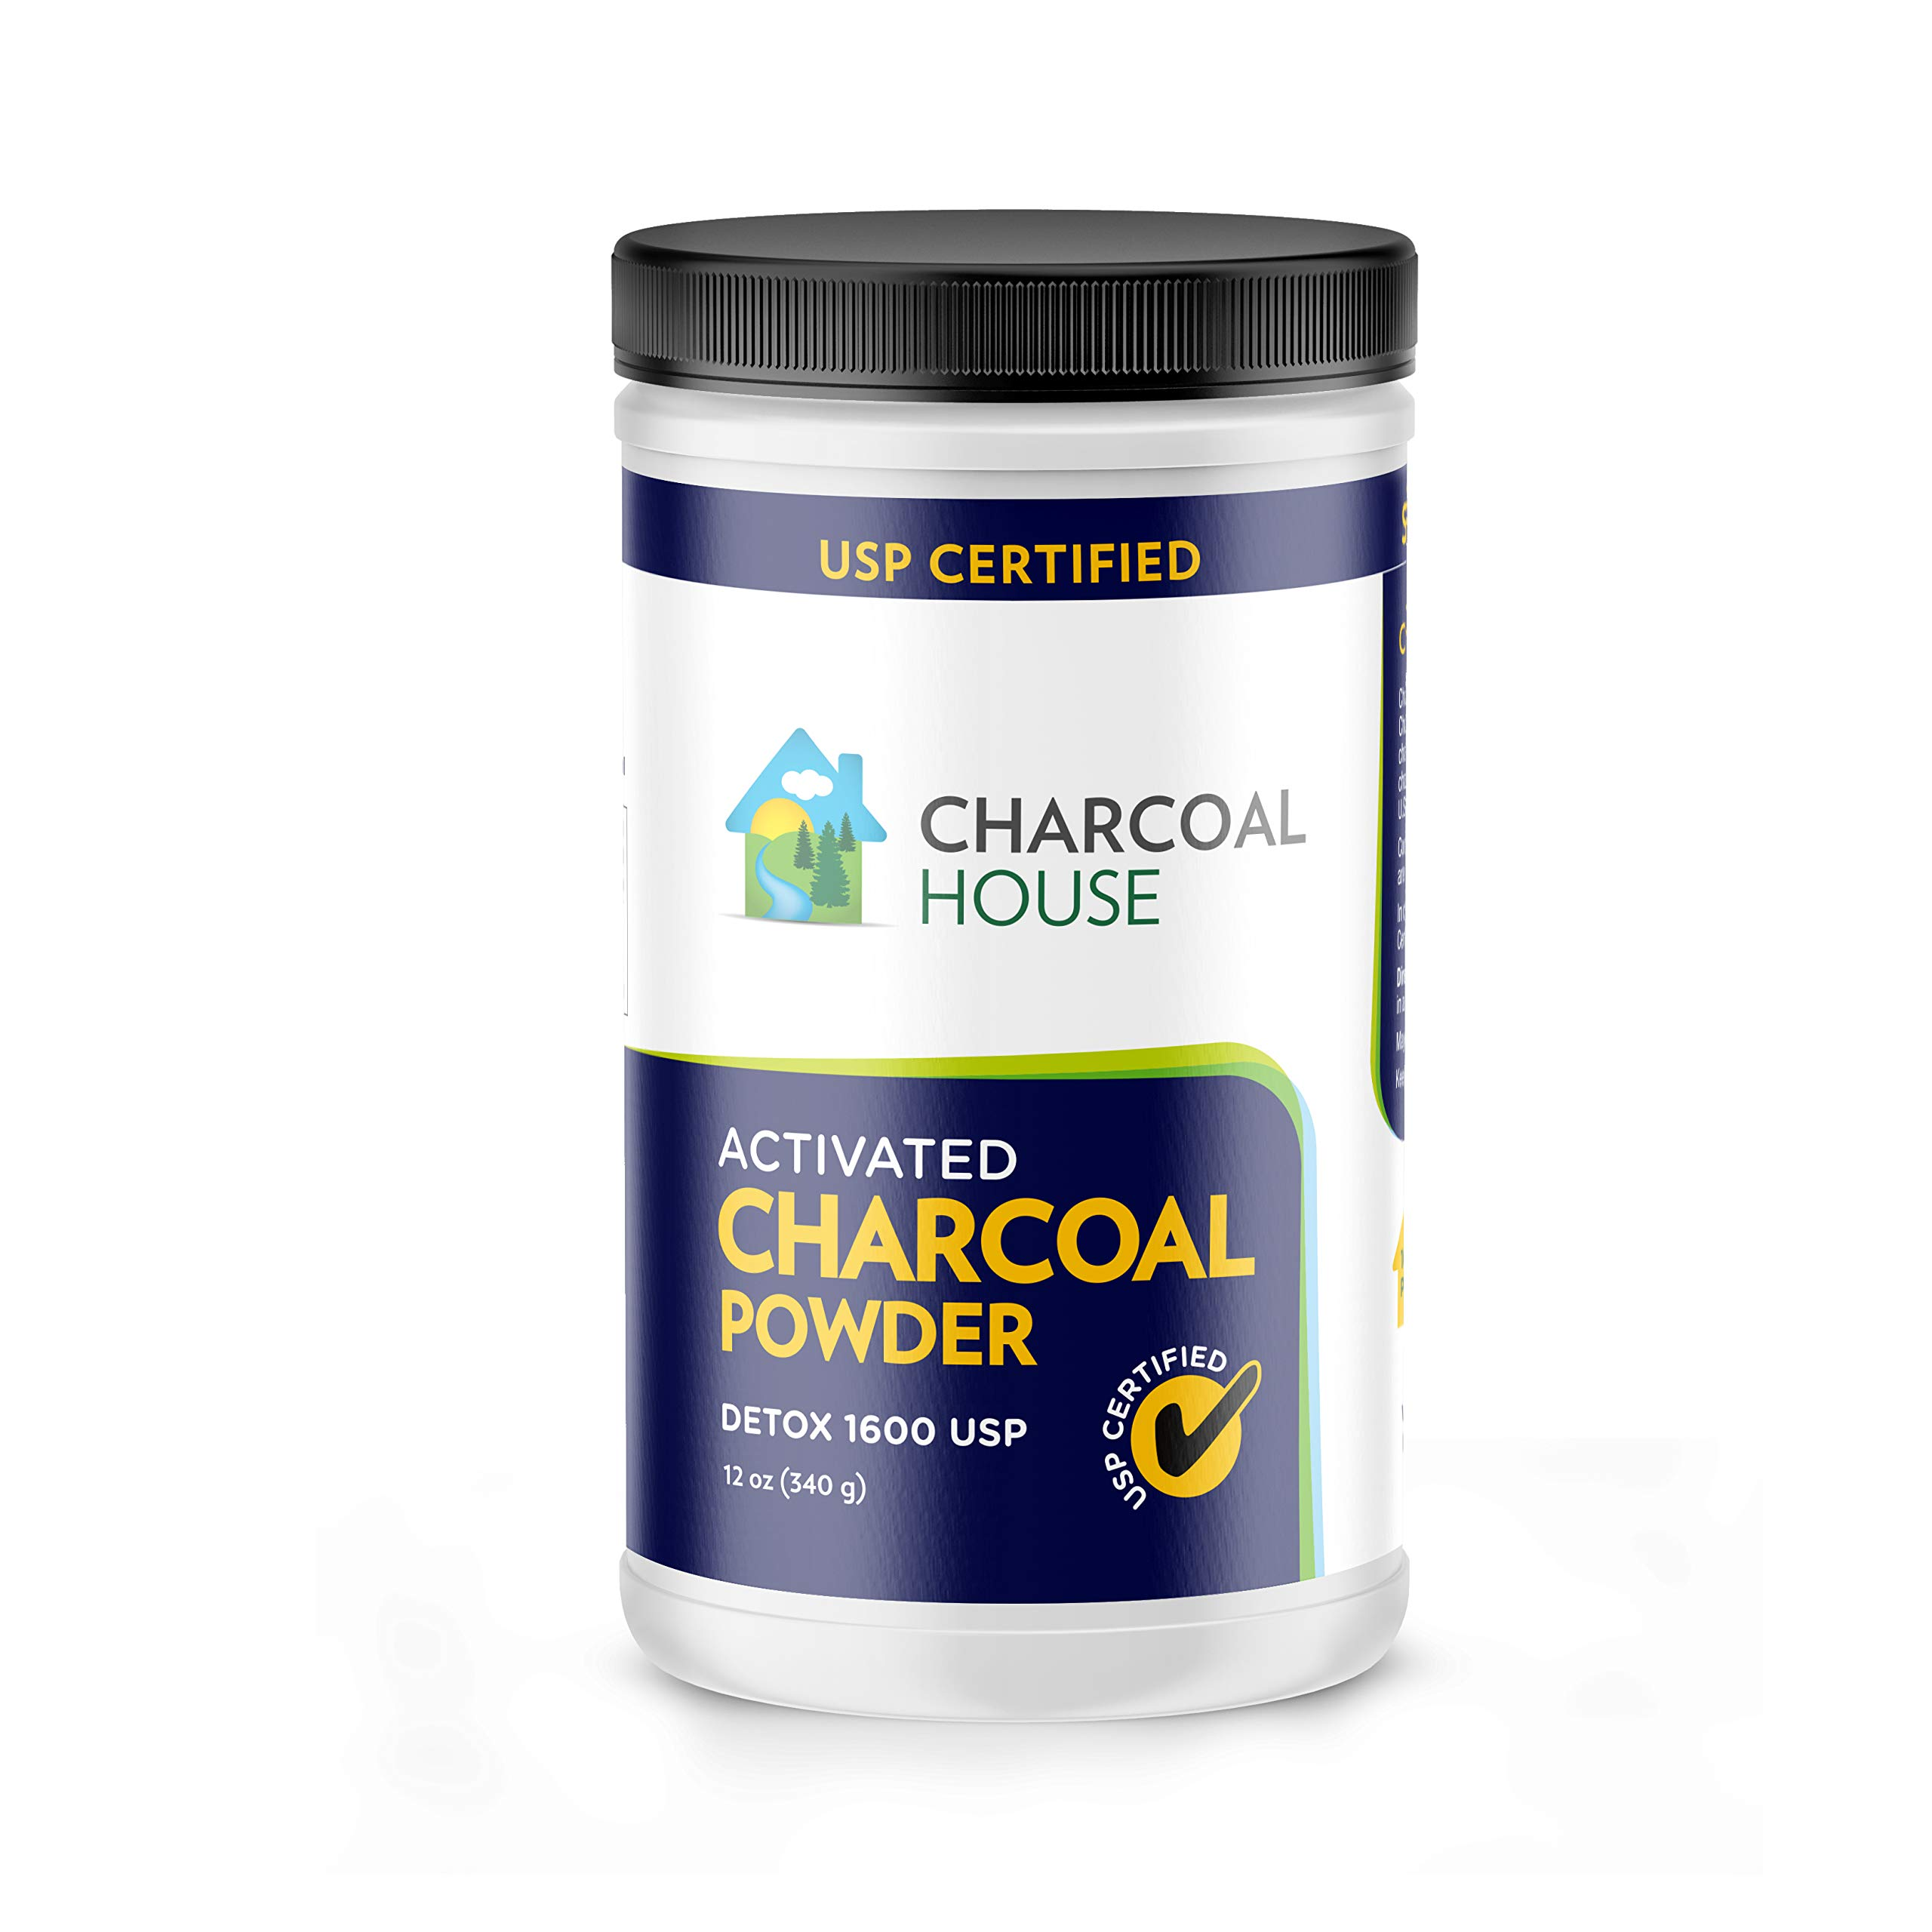 DETOX 1600 USP - Super Fine Coconut Activated Charcoal Powder - 12 oz by Charcoal House (Image #1)